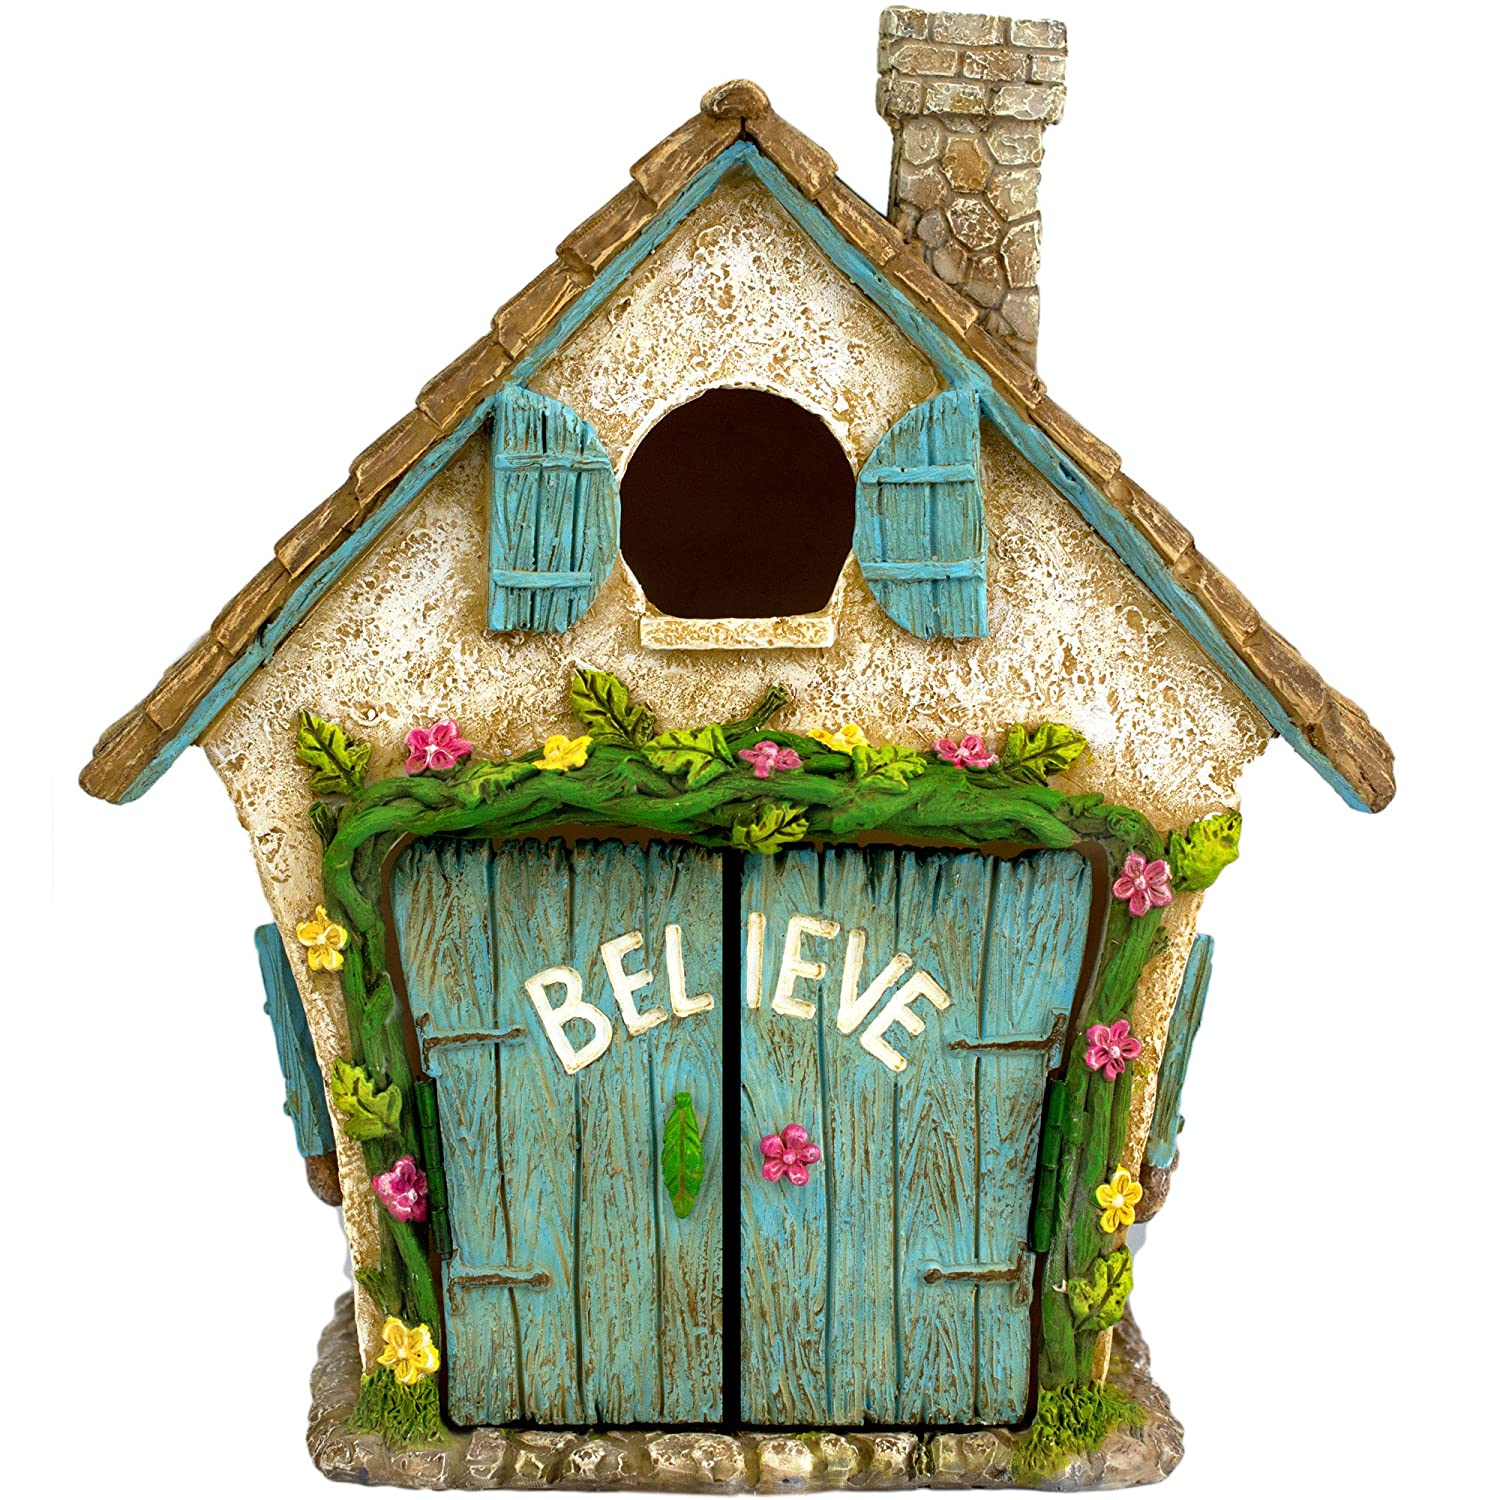 "Twig & Flower The Adorable Believe Fairy Garden House - 8"" tall - Hand Painted (with Doors that Open) by"